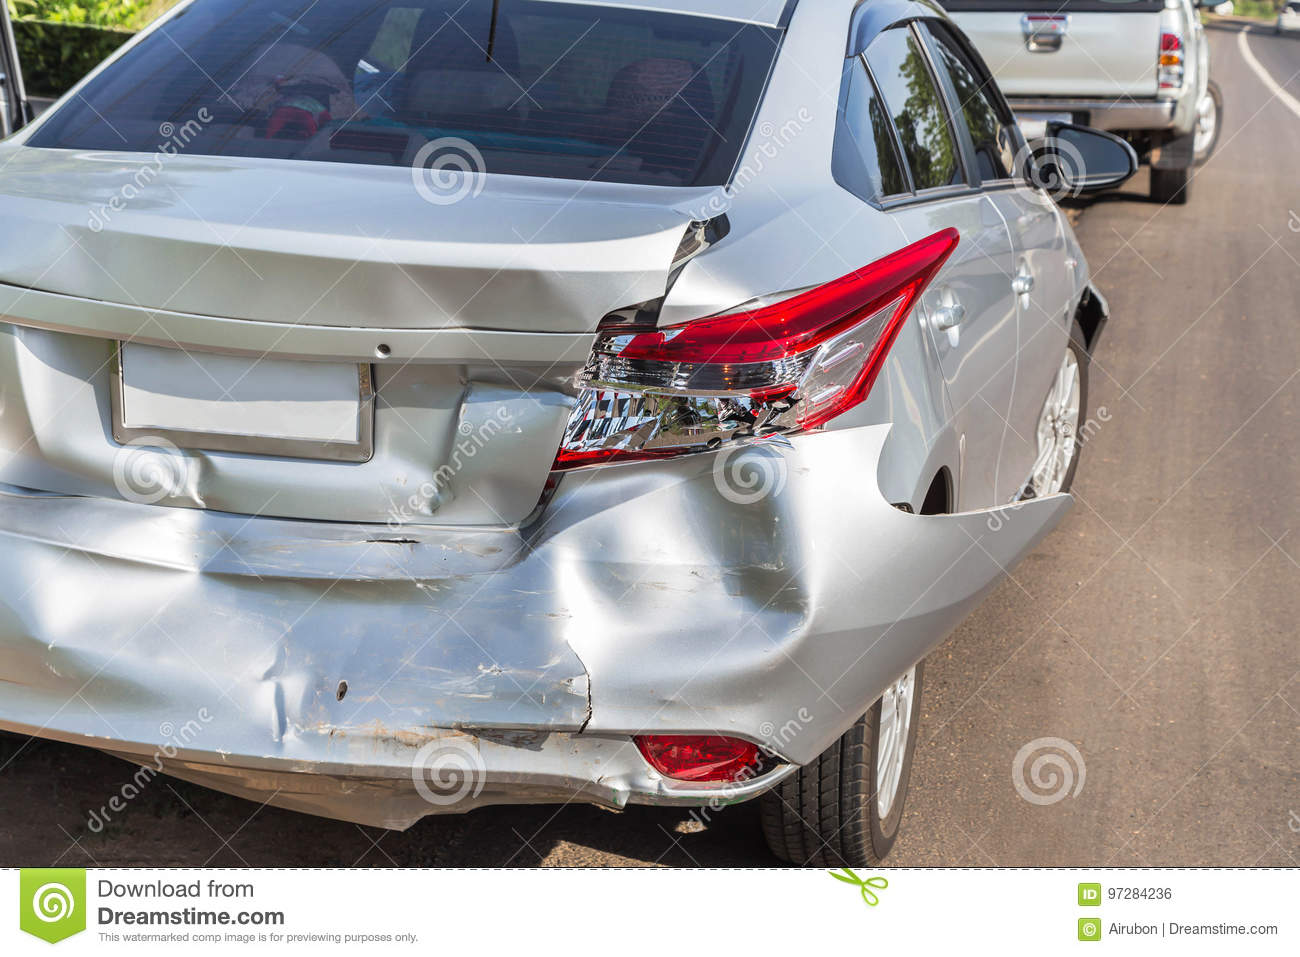 Car crash accident